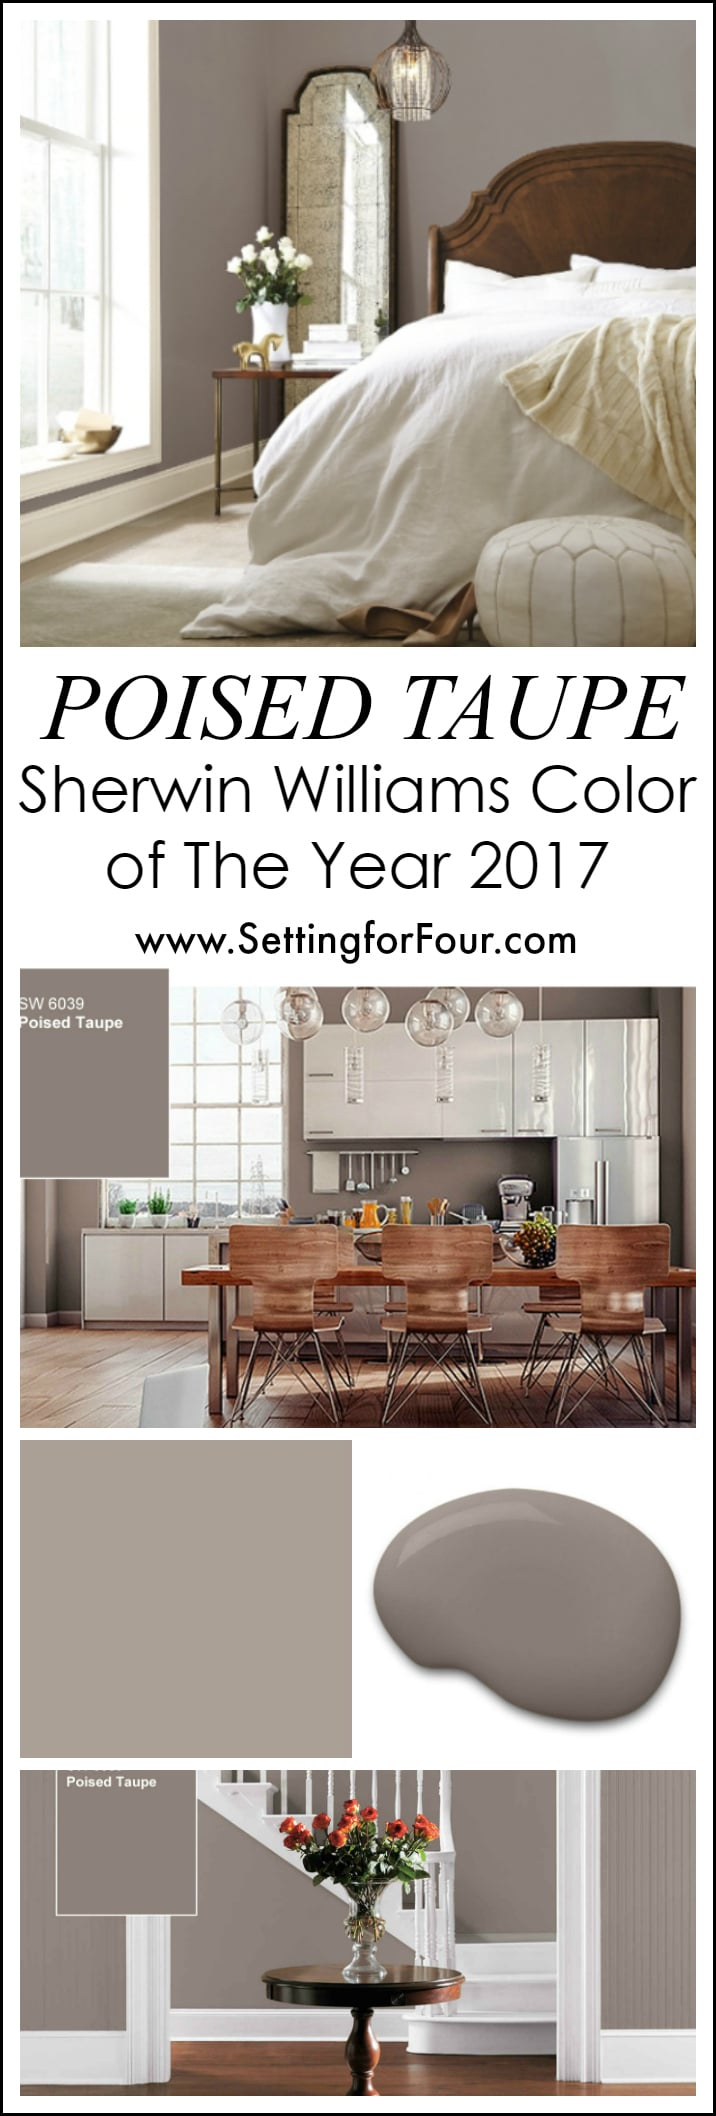 Sherwin williams poised taupe color of the year 2017 setting for four for your home looking for a paint color to paint your next room see geenschuldenfo Images